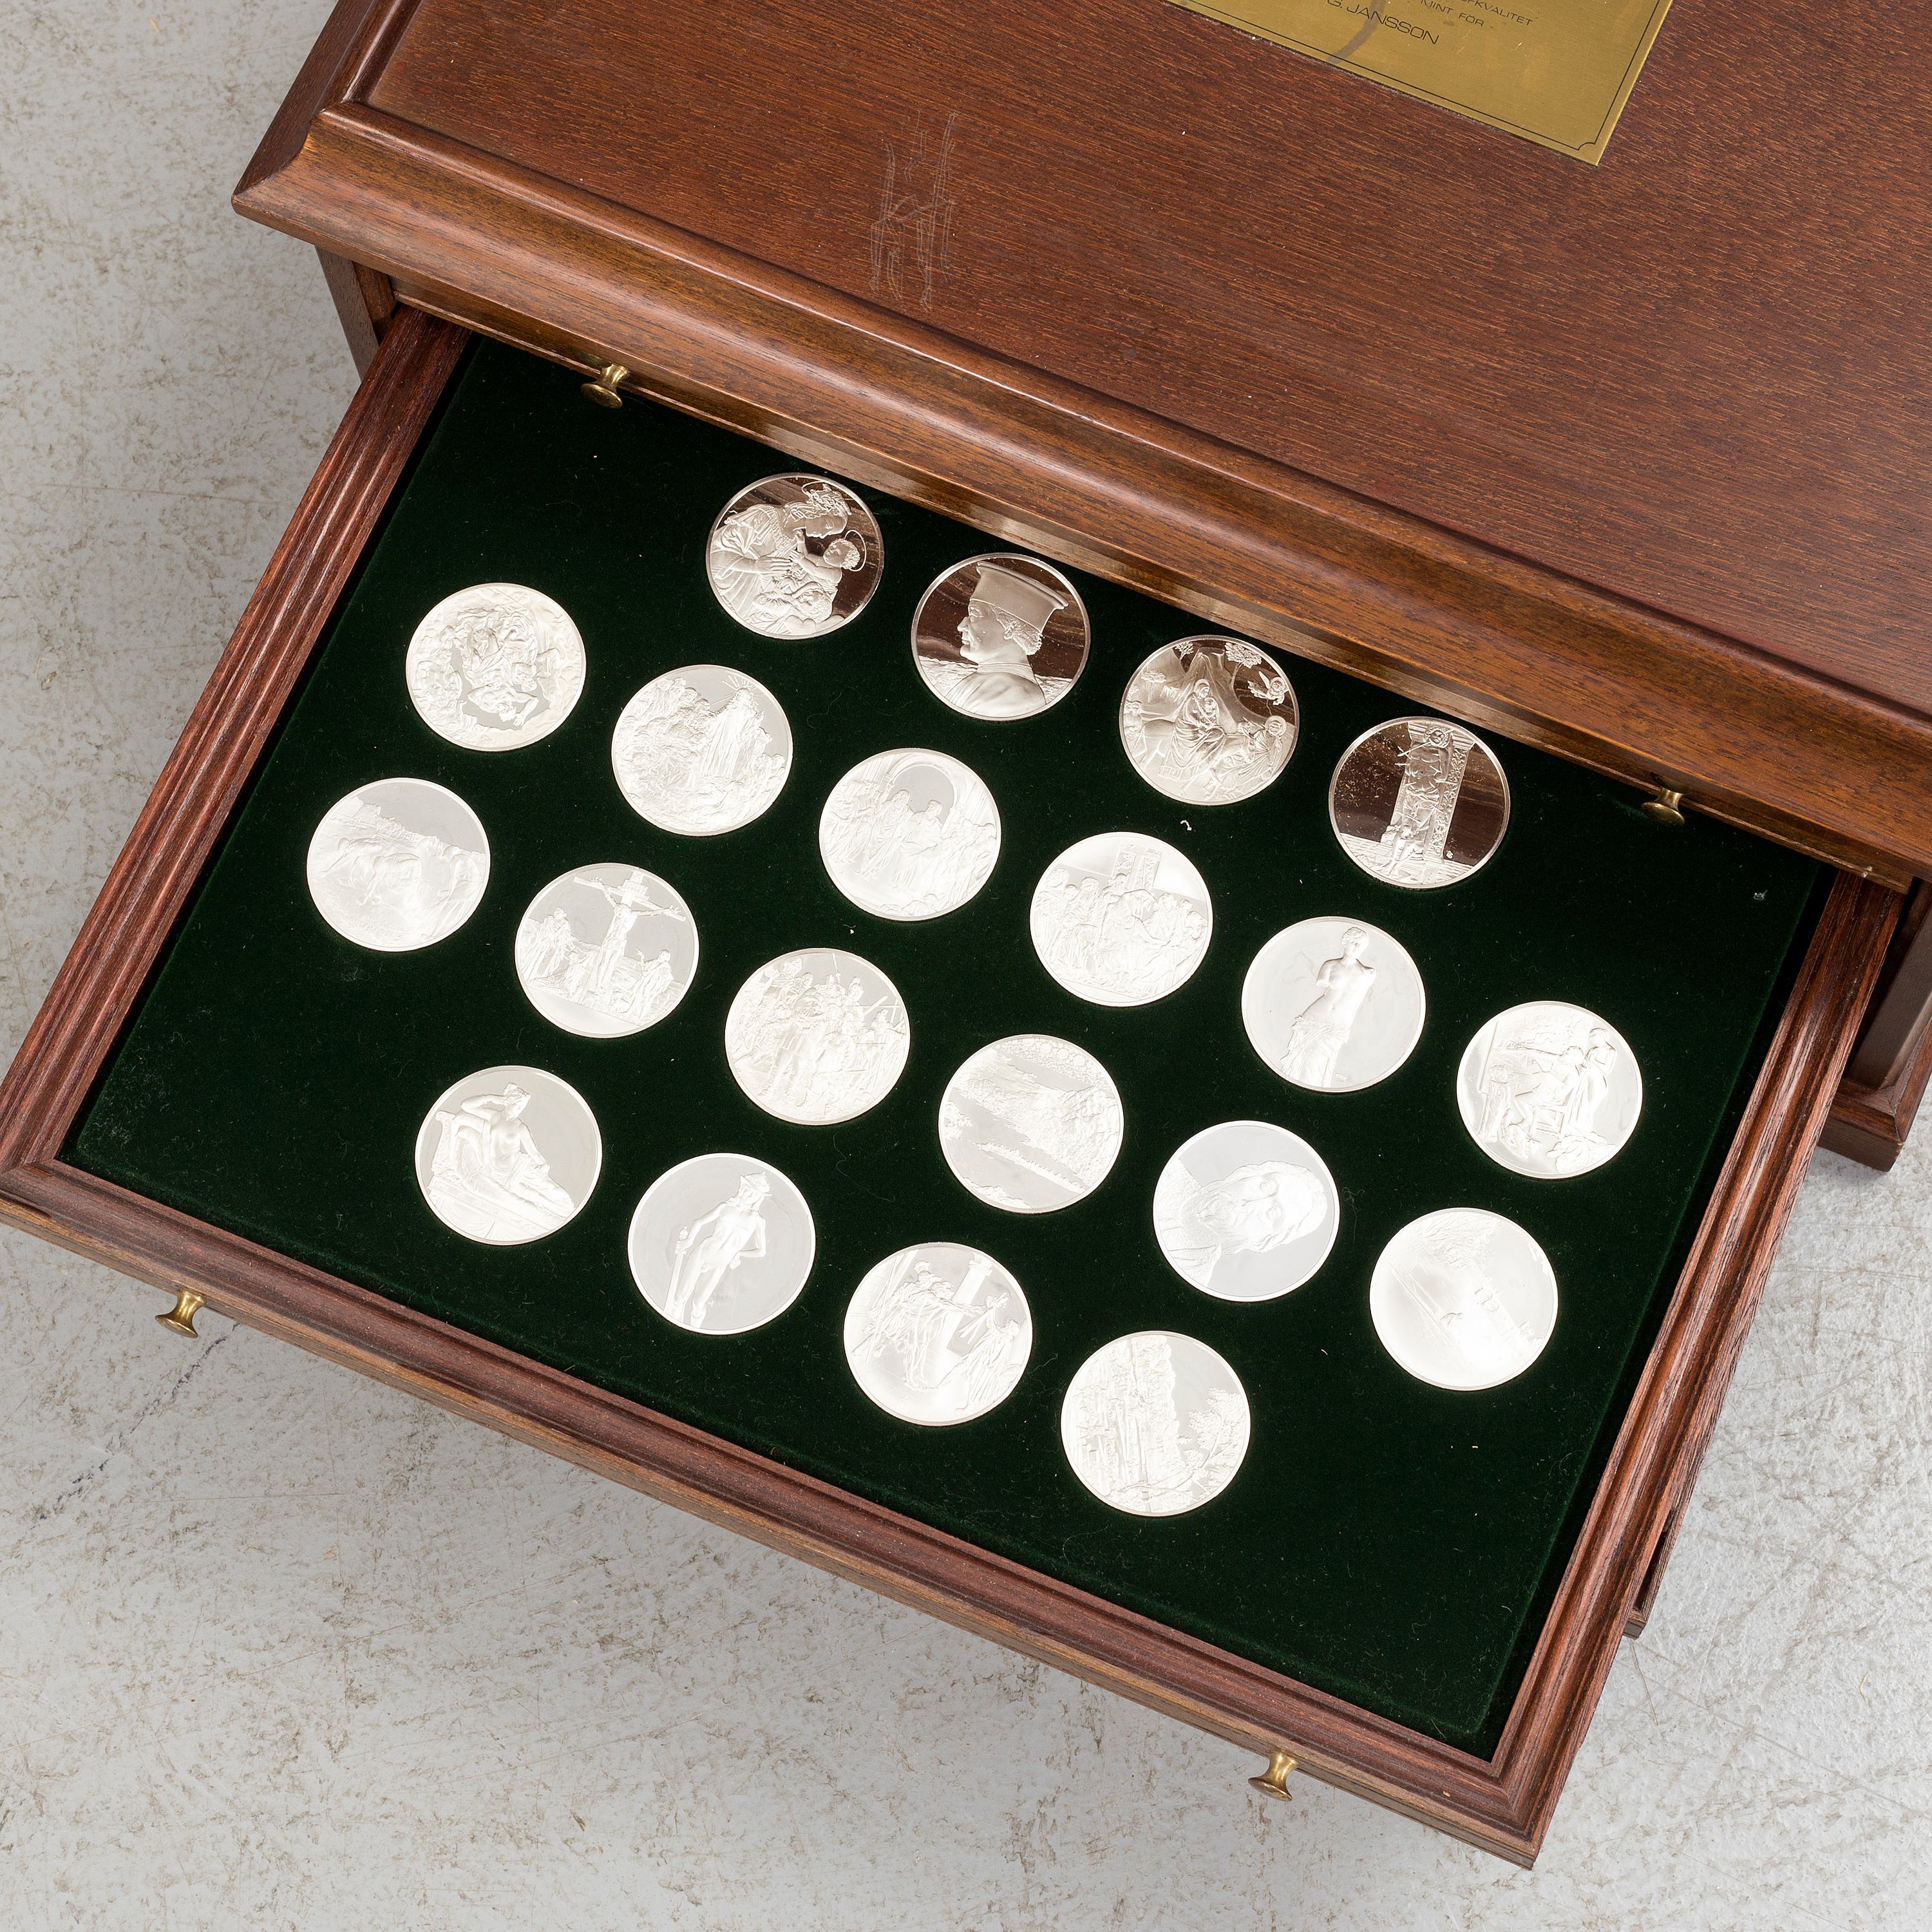 100 sterling silver coins in a wooden cabinet by Franklin mint